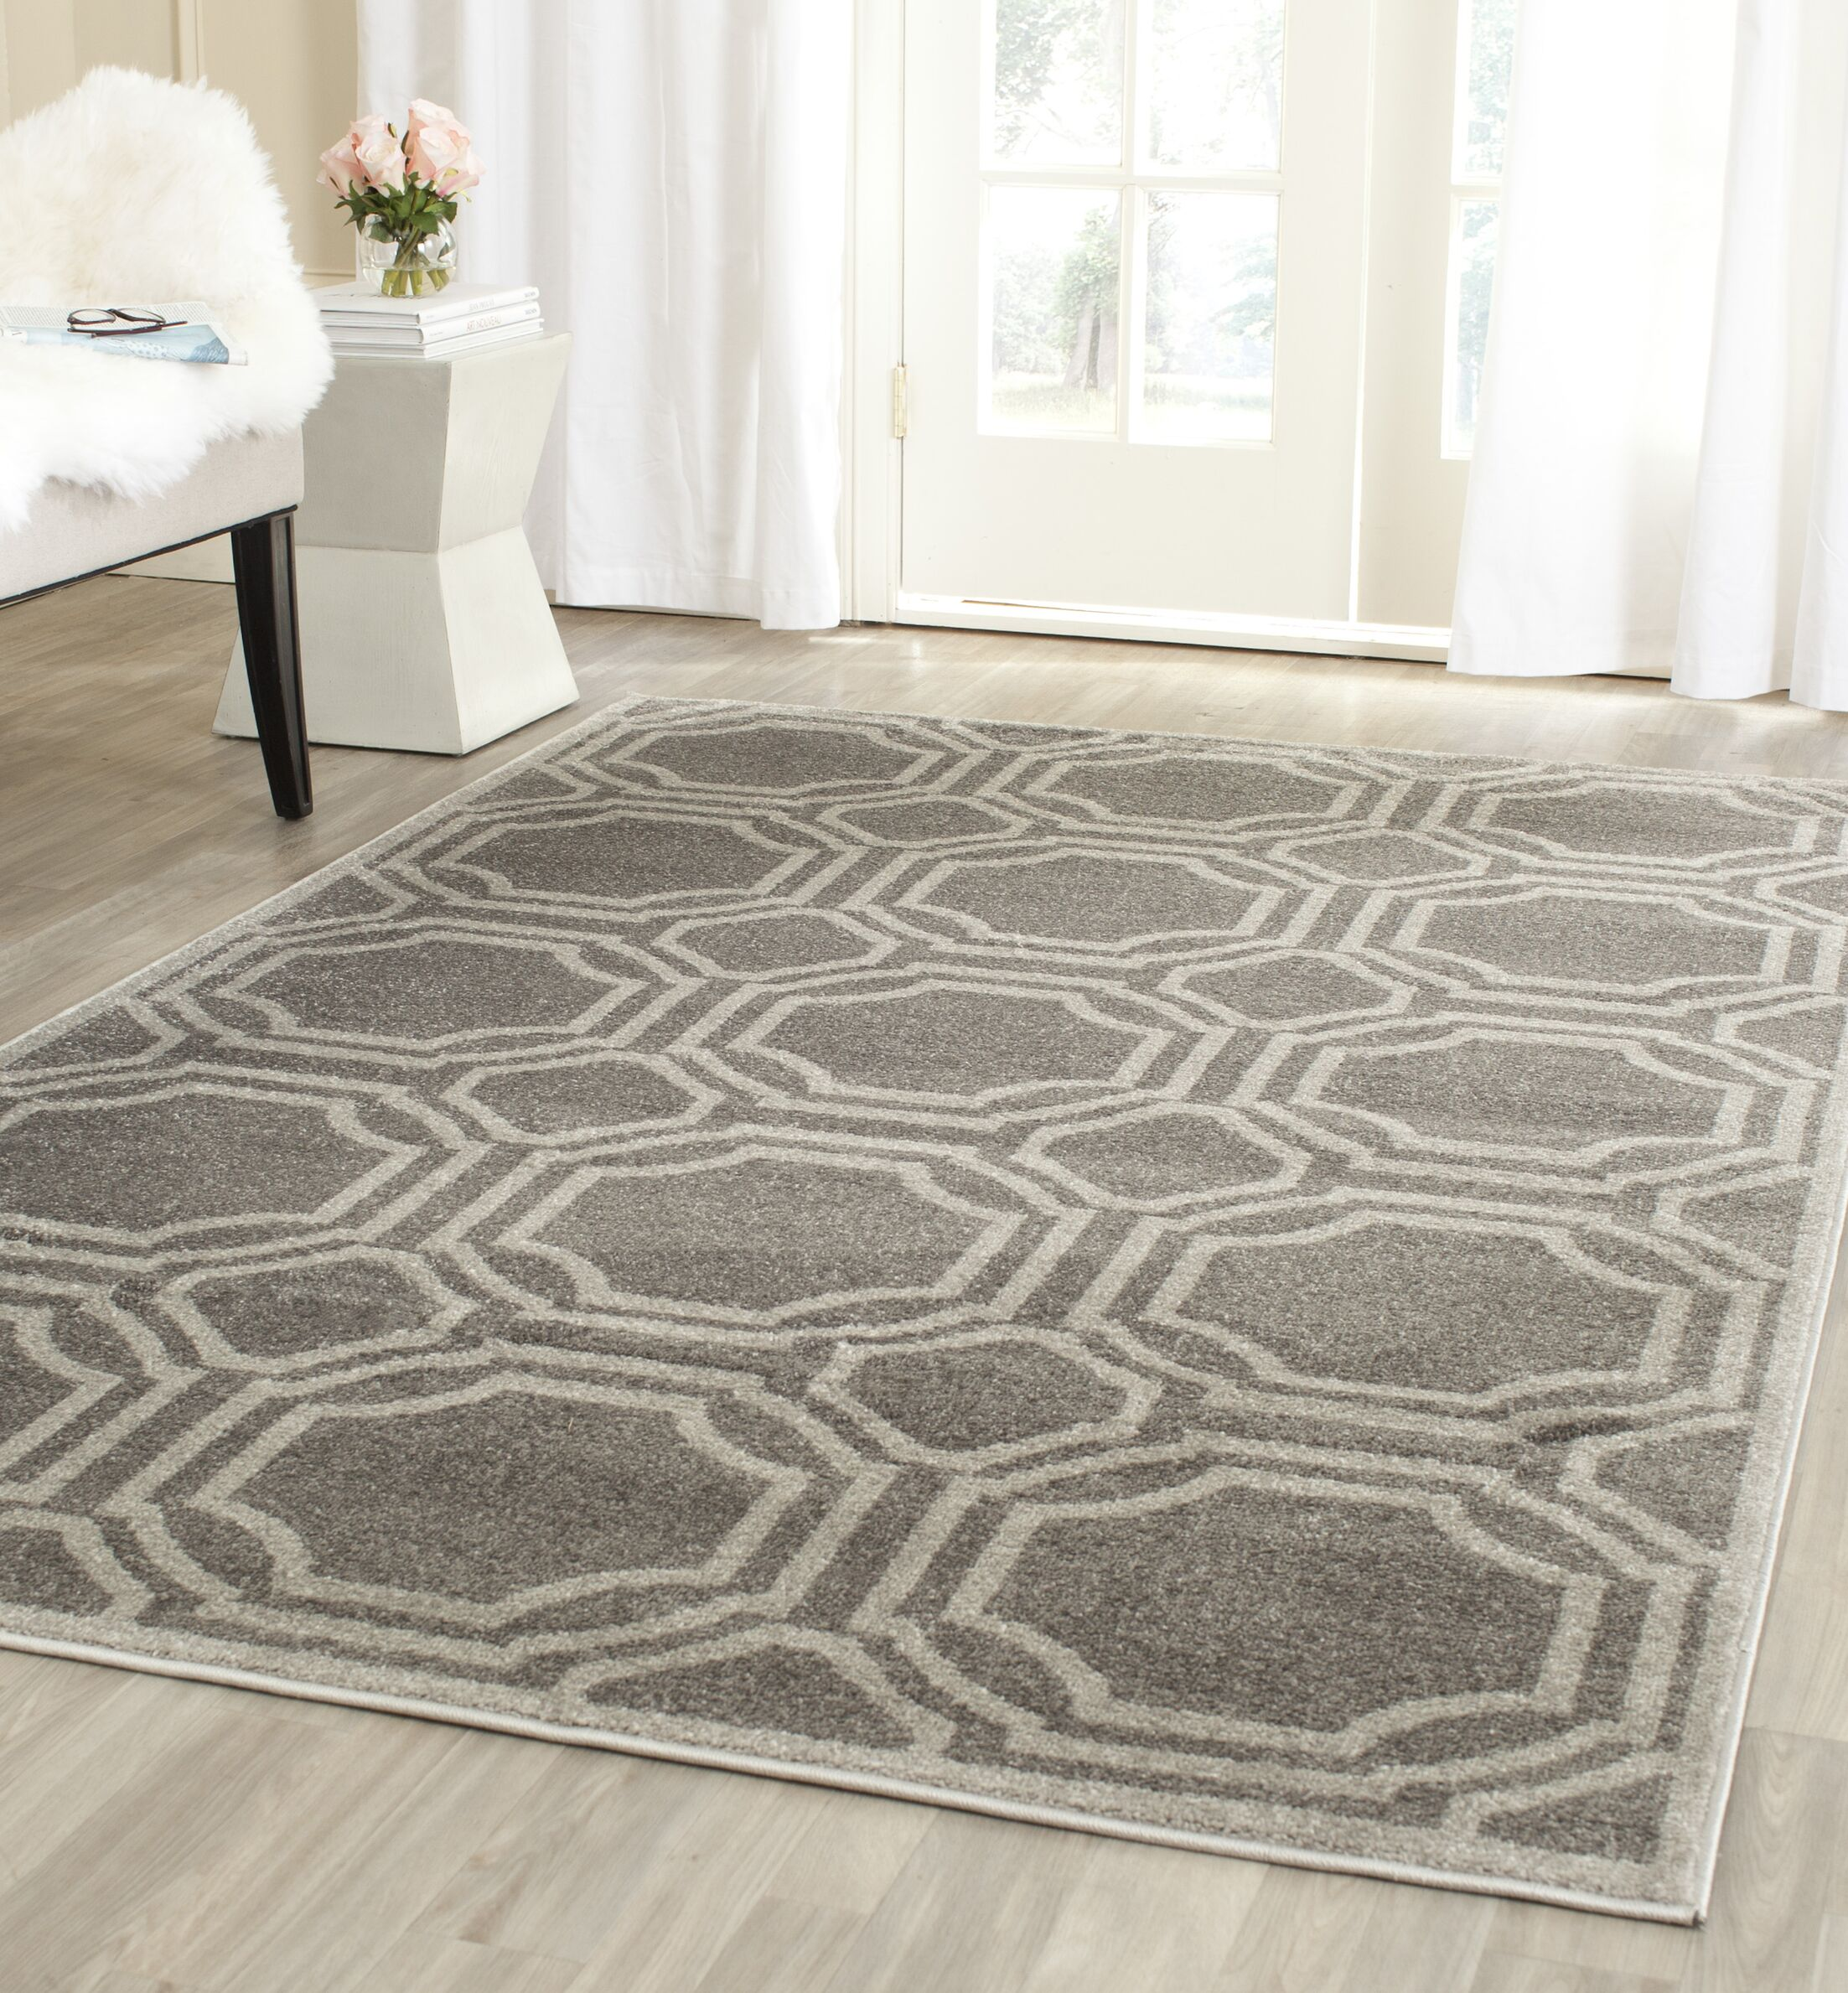 Maritza Grey & Light Grey Indoor/Outdoor Area Rug Rug Size: Rectangle 5' x 8'